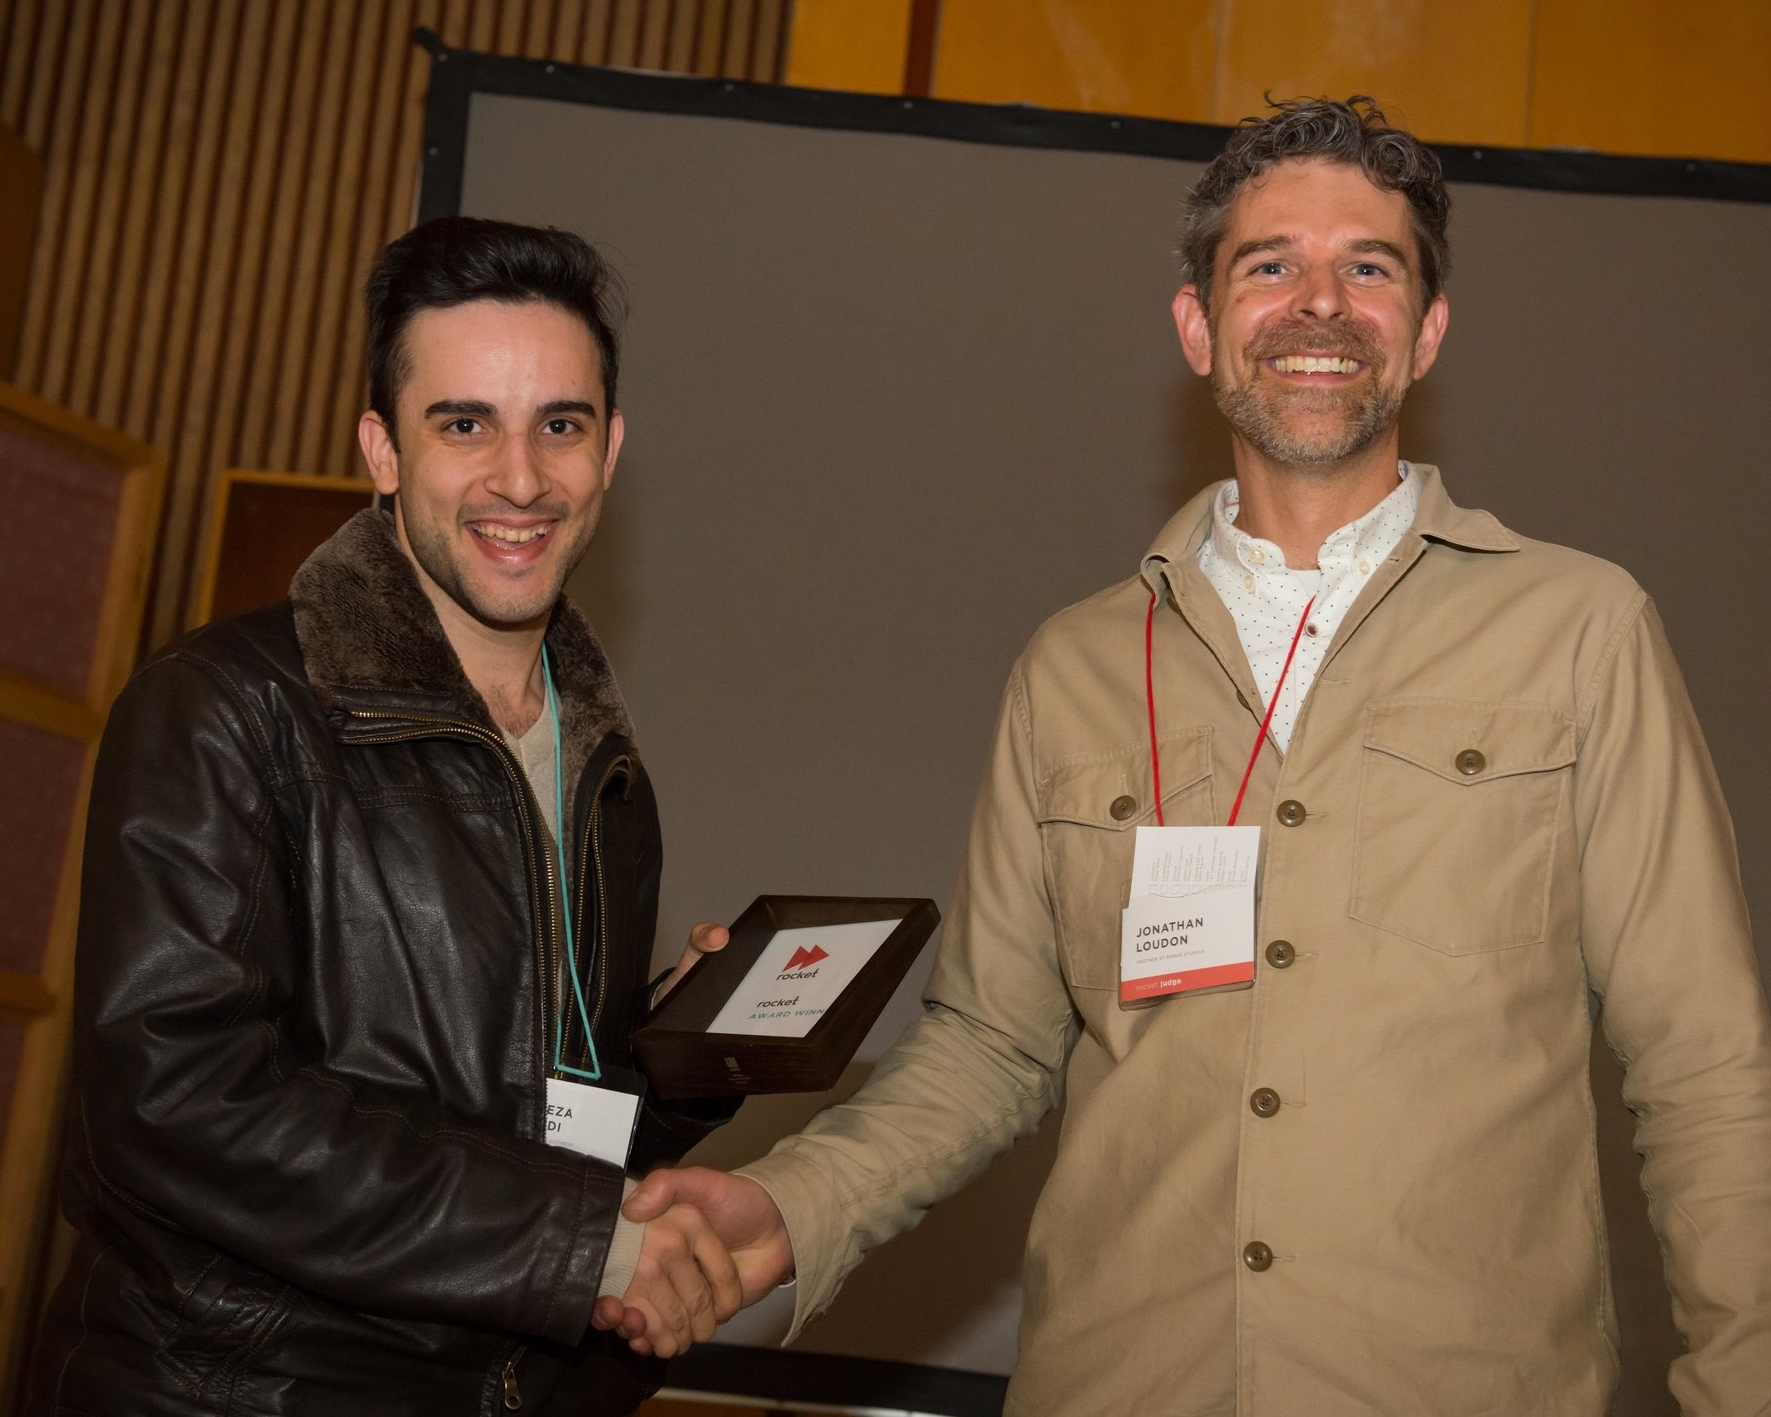 Alireza Saeedi accepting the Rocket Award from ACIDO President Jonathan Loudon.